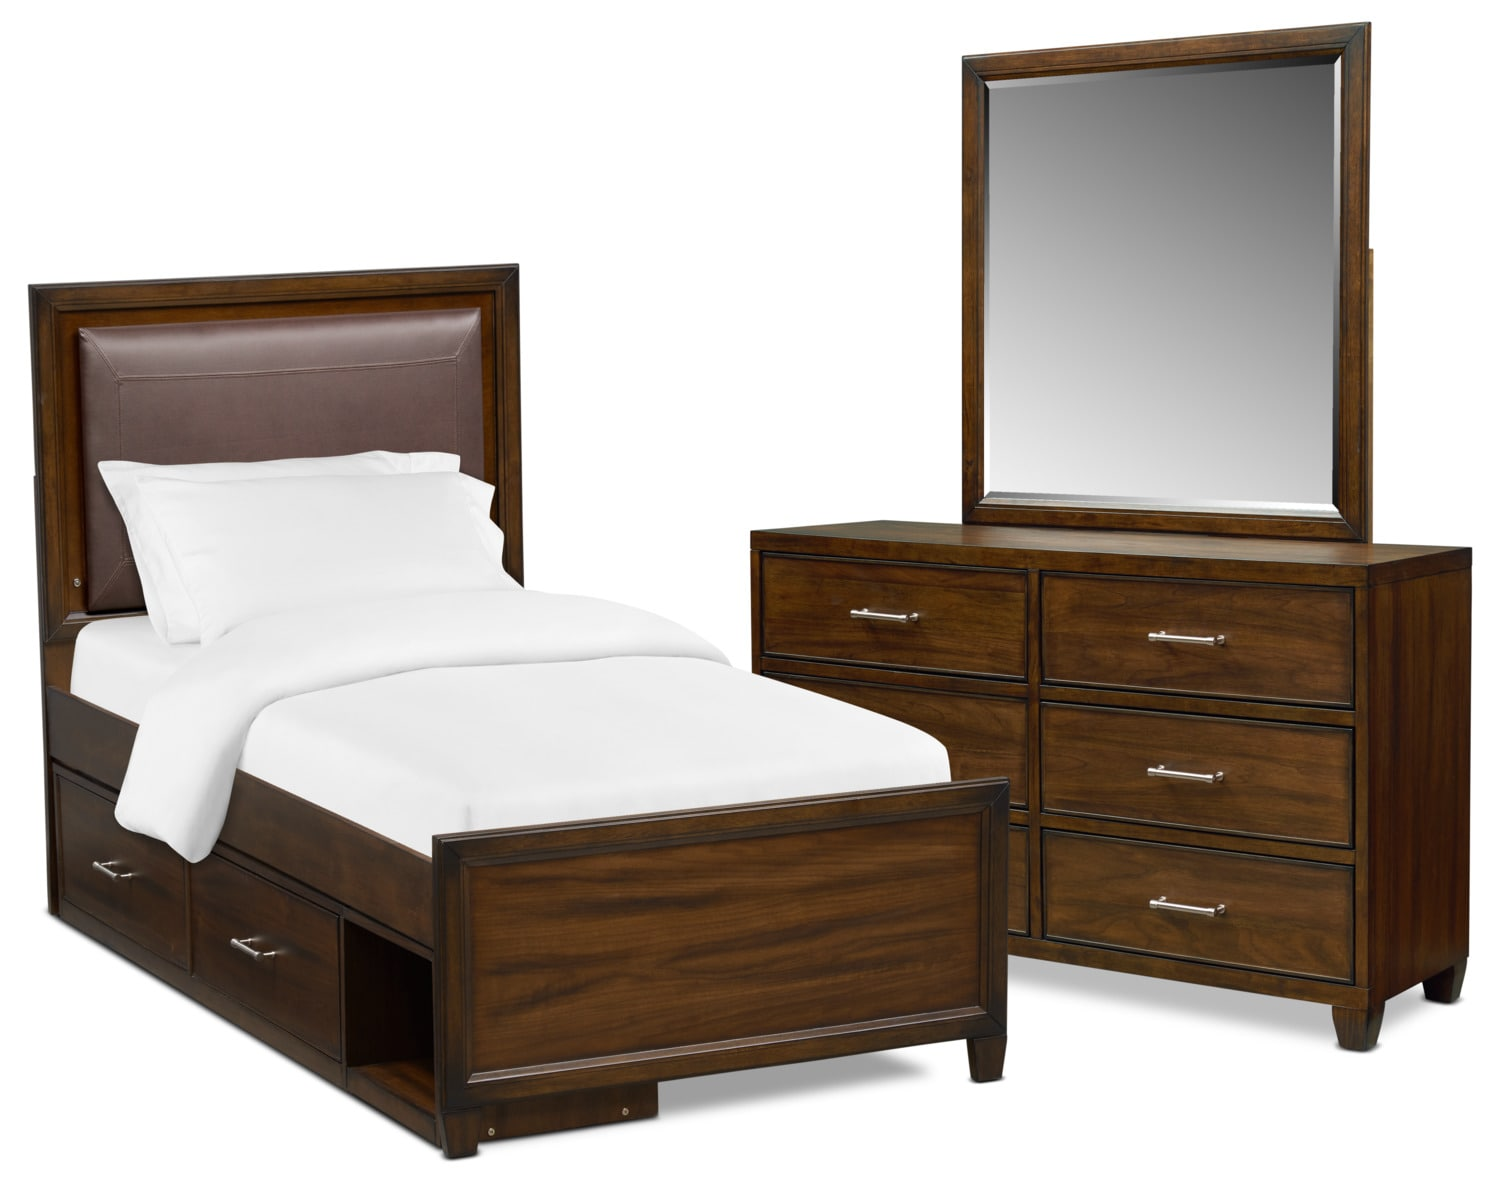 Bedroom Furniture - Sullivan 5-Piece Upholstered Bedroom Set with Storage, Dresser and Mirror